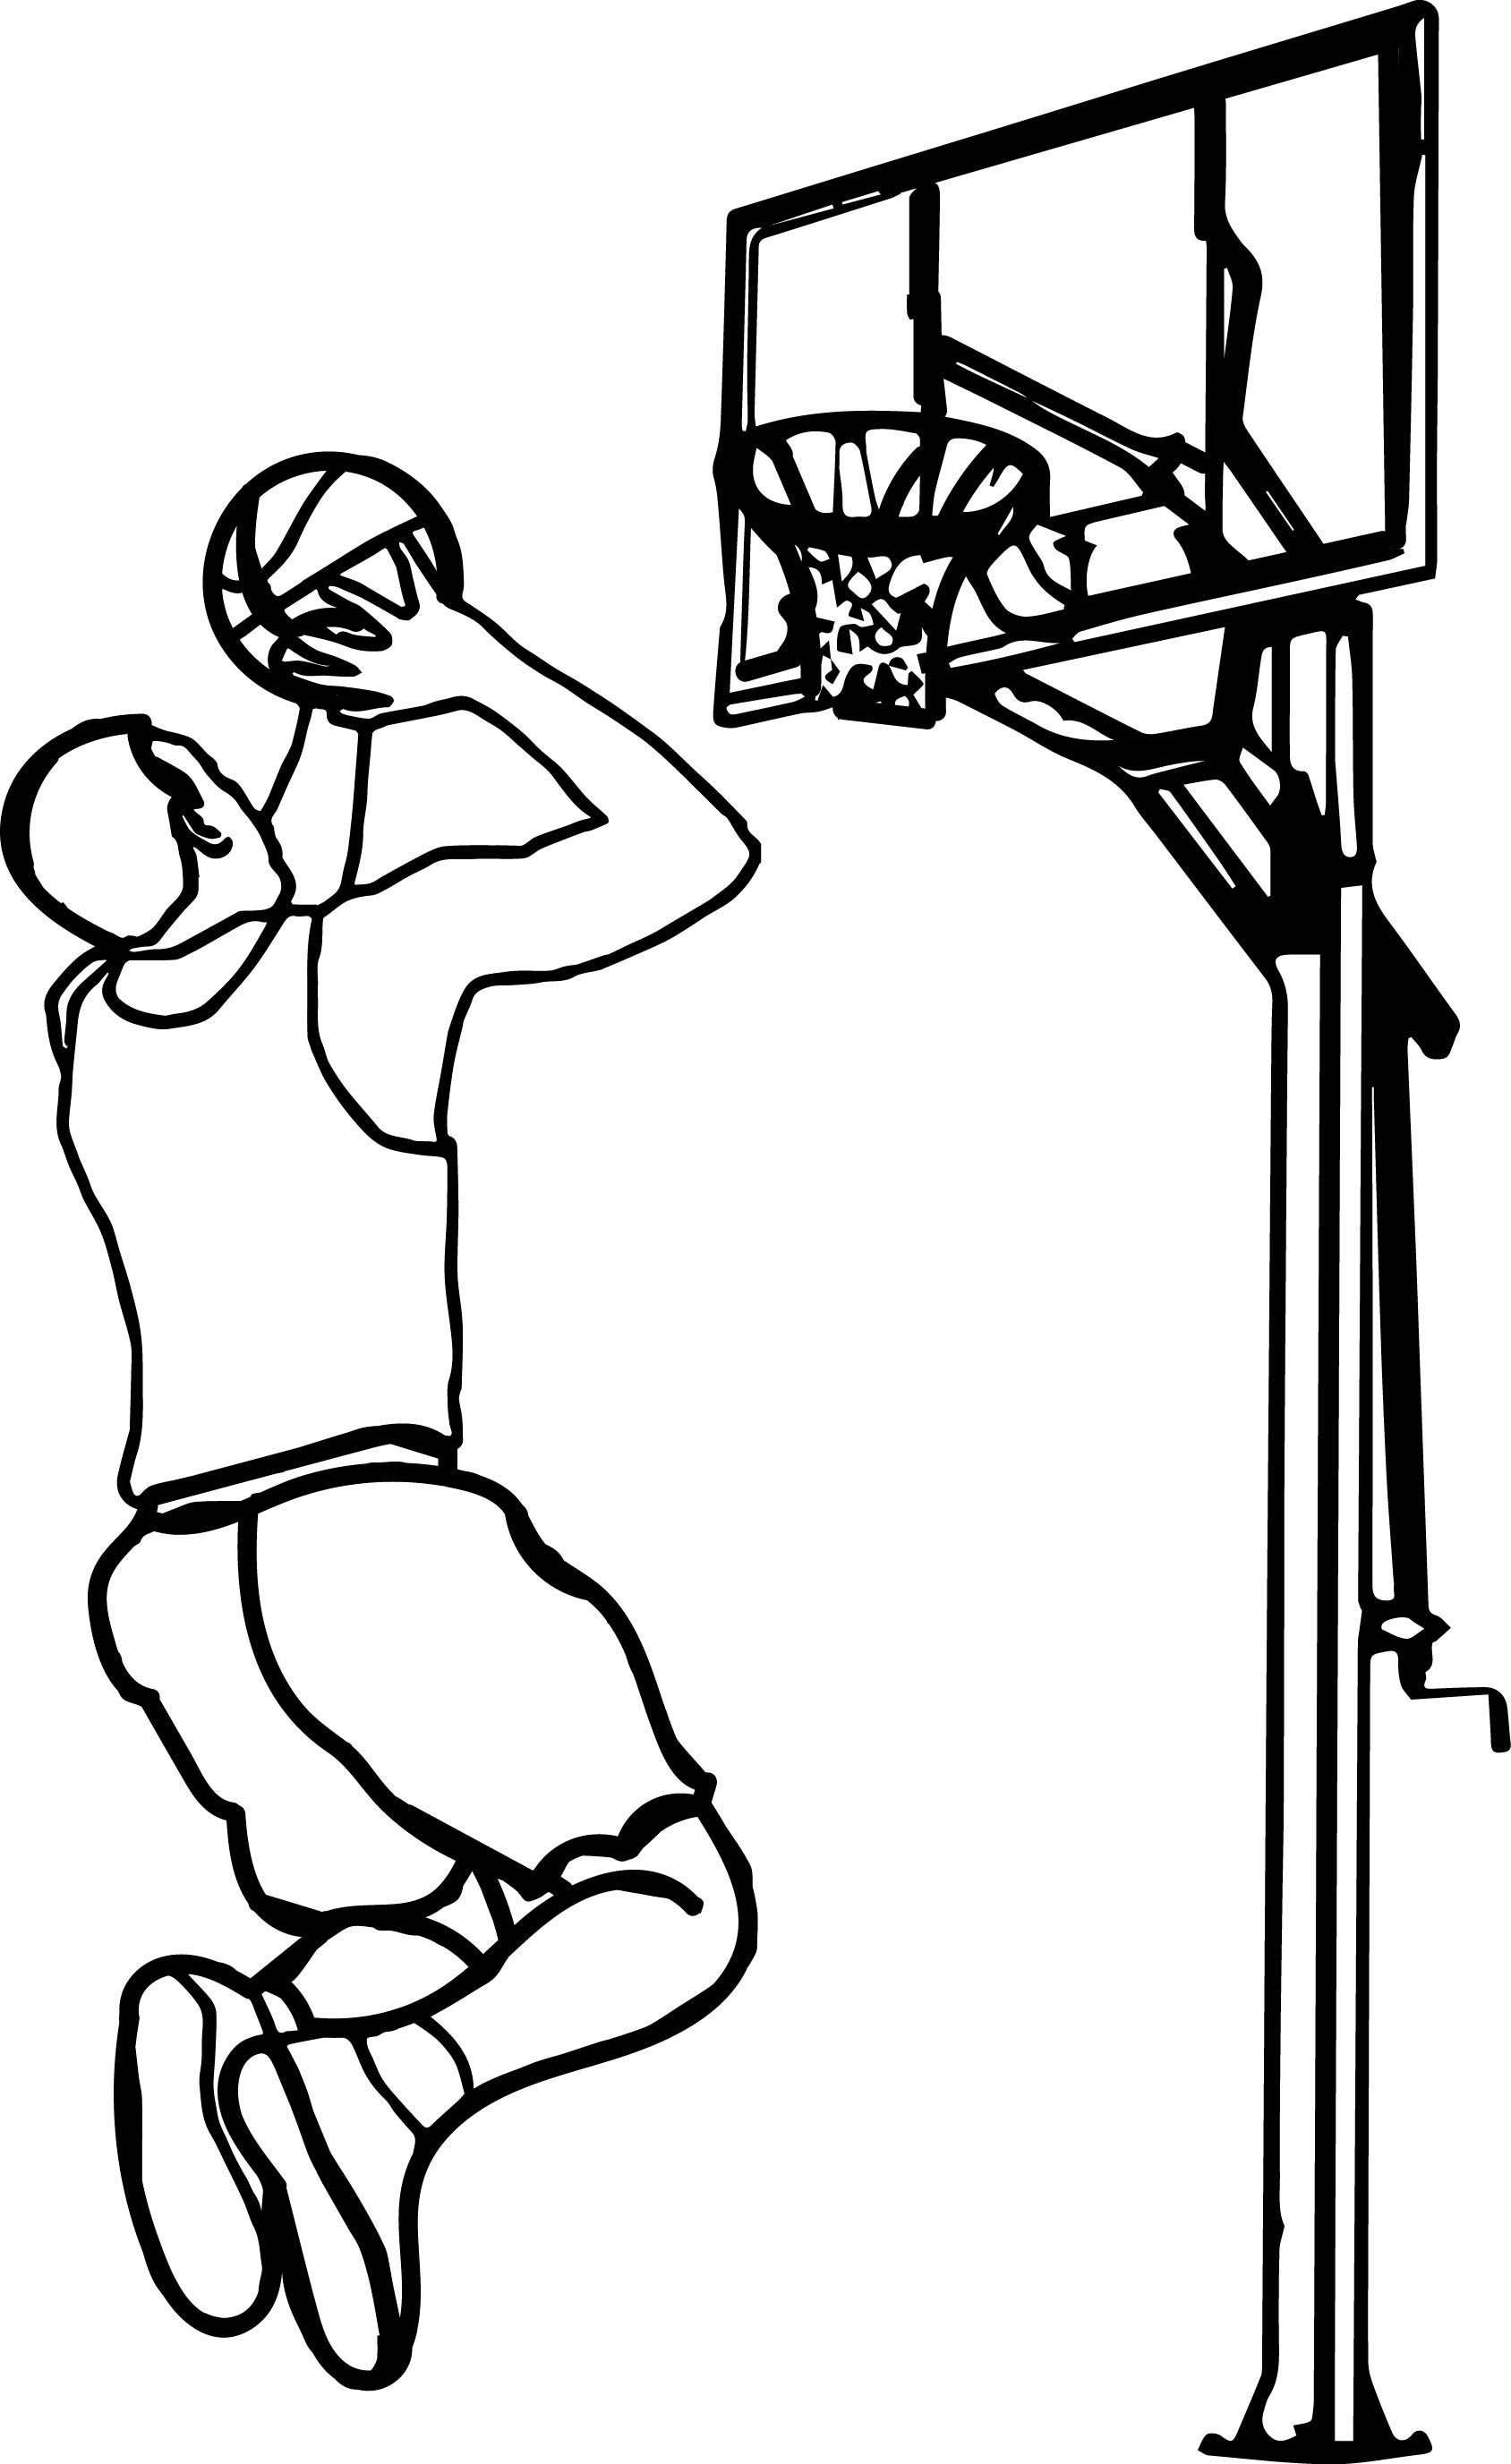 Nice The Basketball Clipart For My Friend Thatrsquos You Playing Basketball Coloring Page Desenhos Esportes